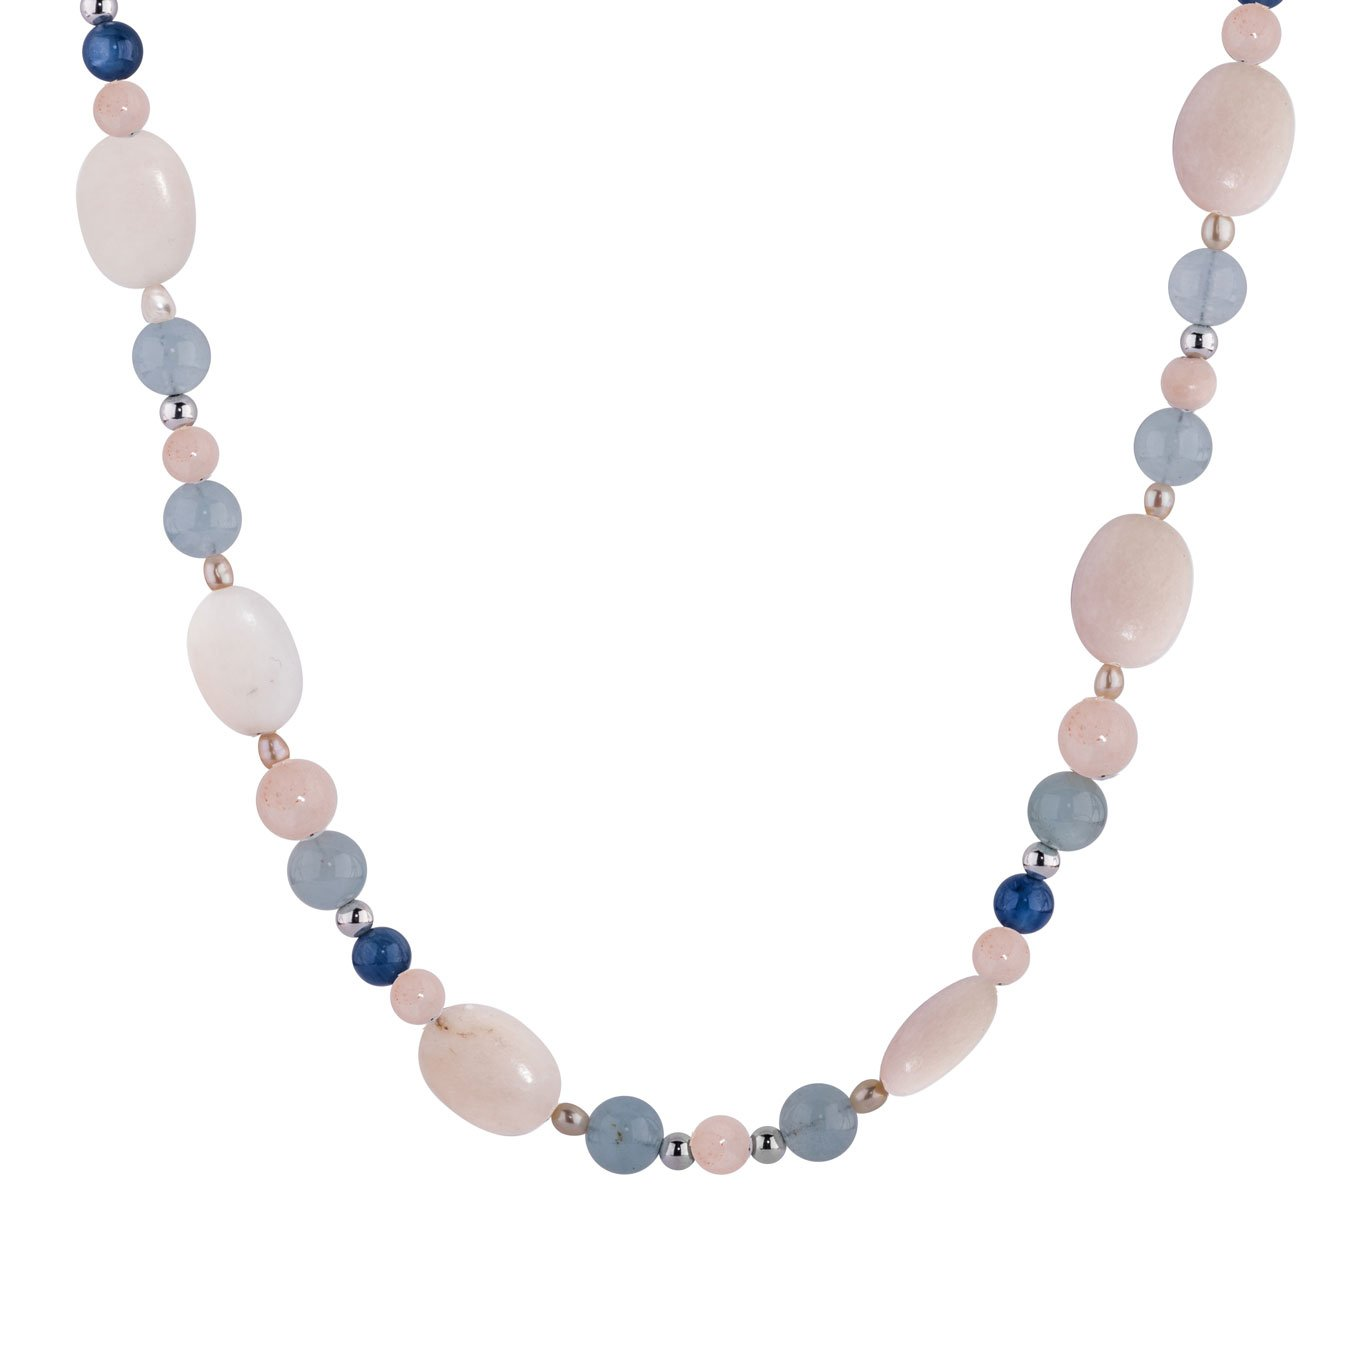 Carolyn Pollack Sterling Silver & Shades of Sunrise Beach 32 Inch Beaded Necklace